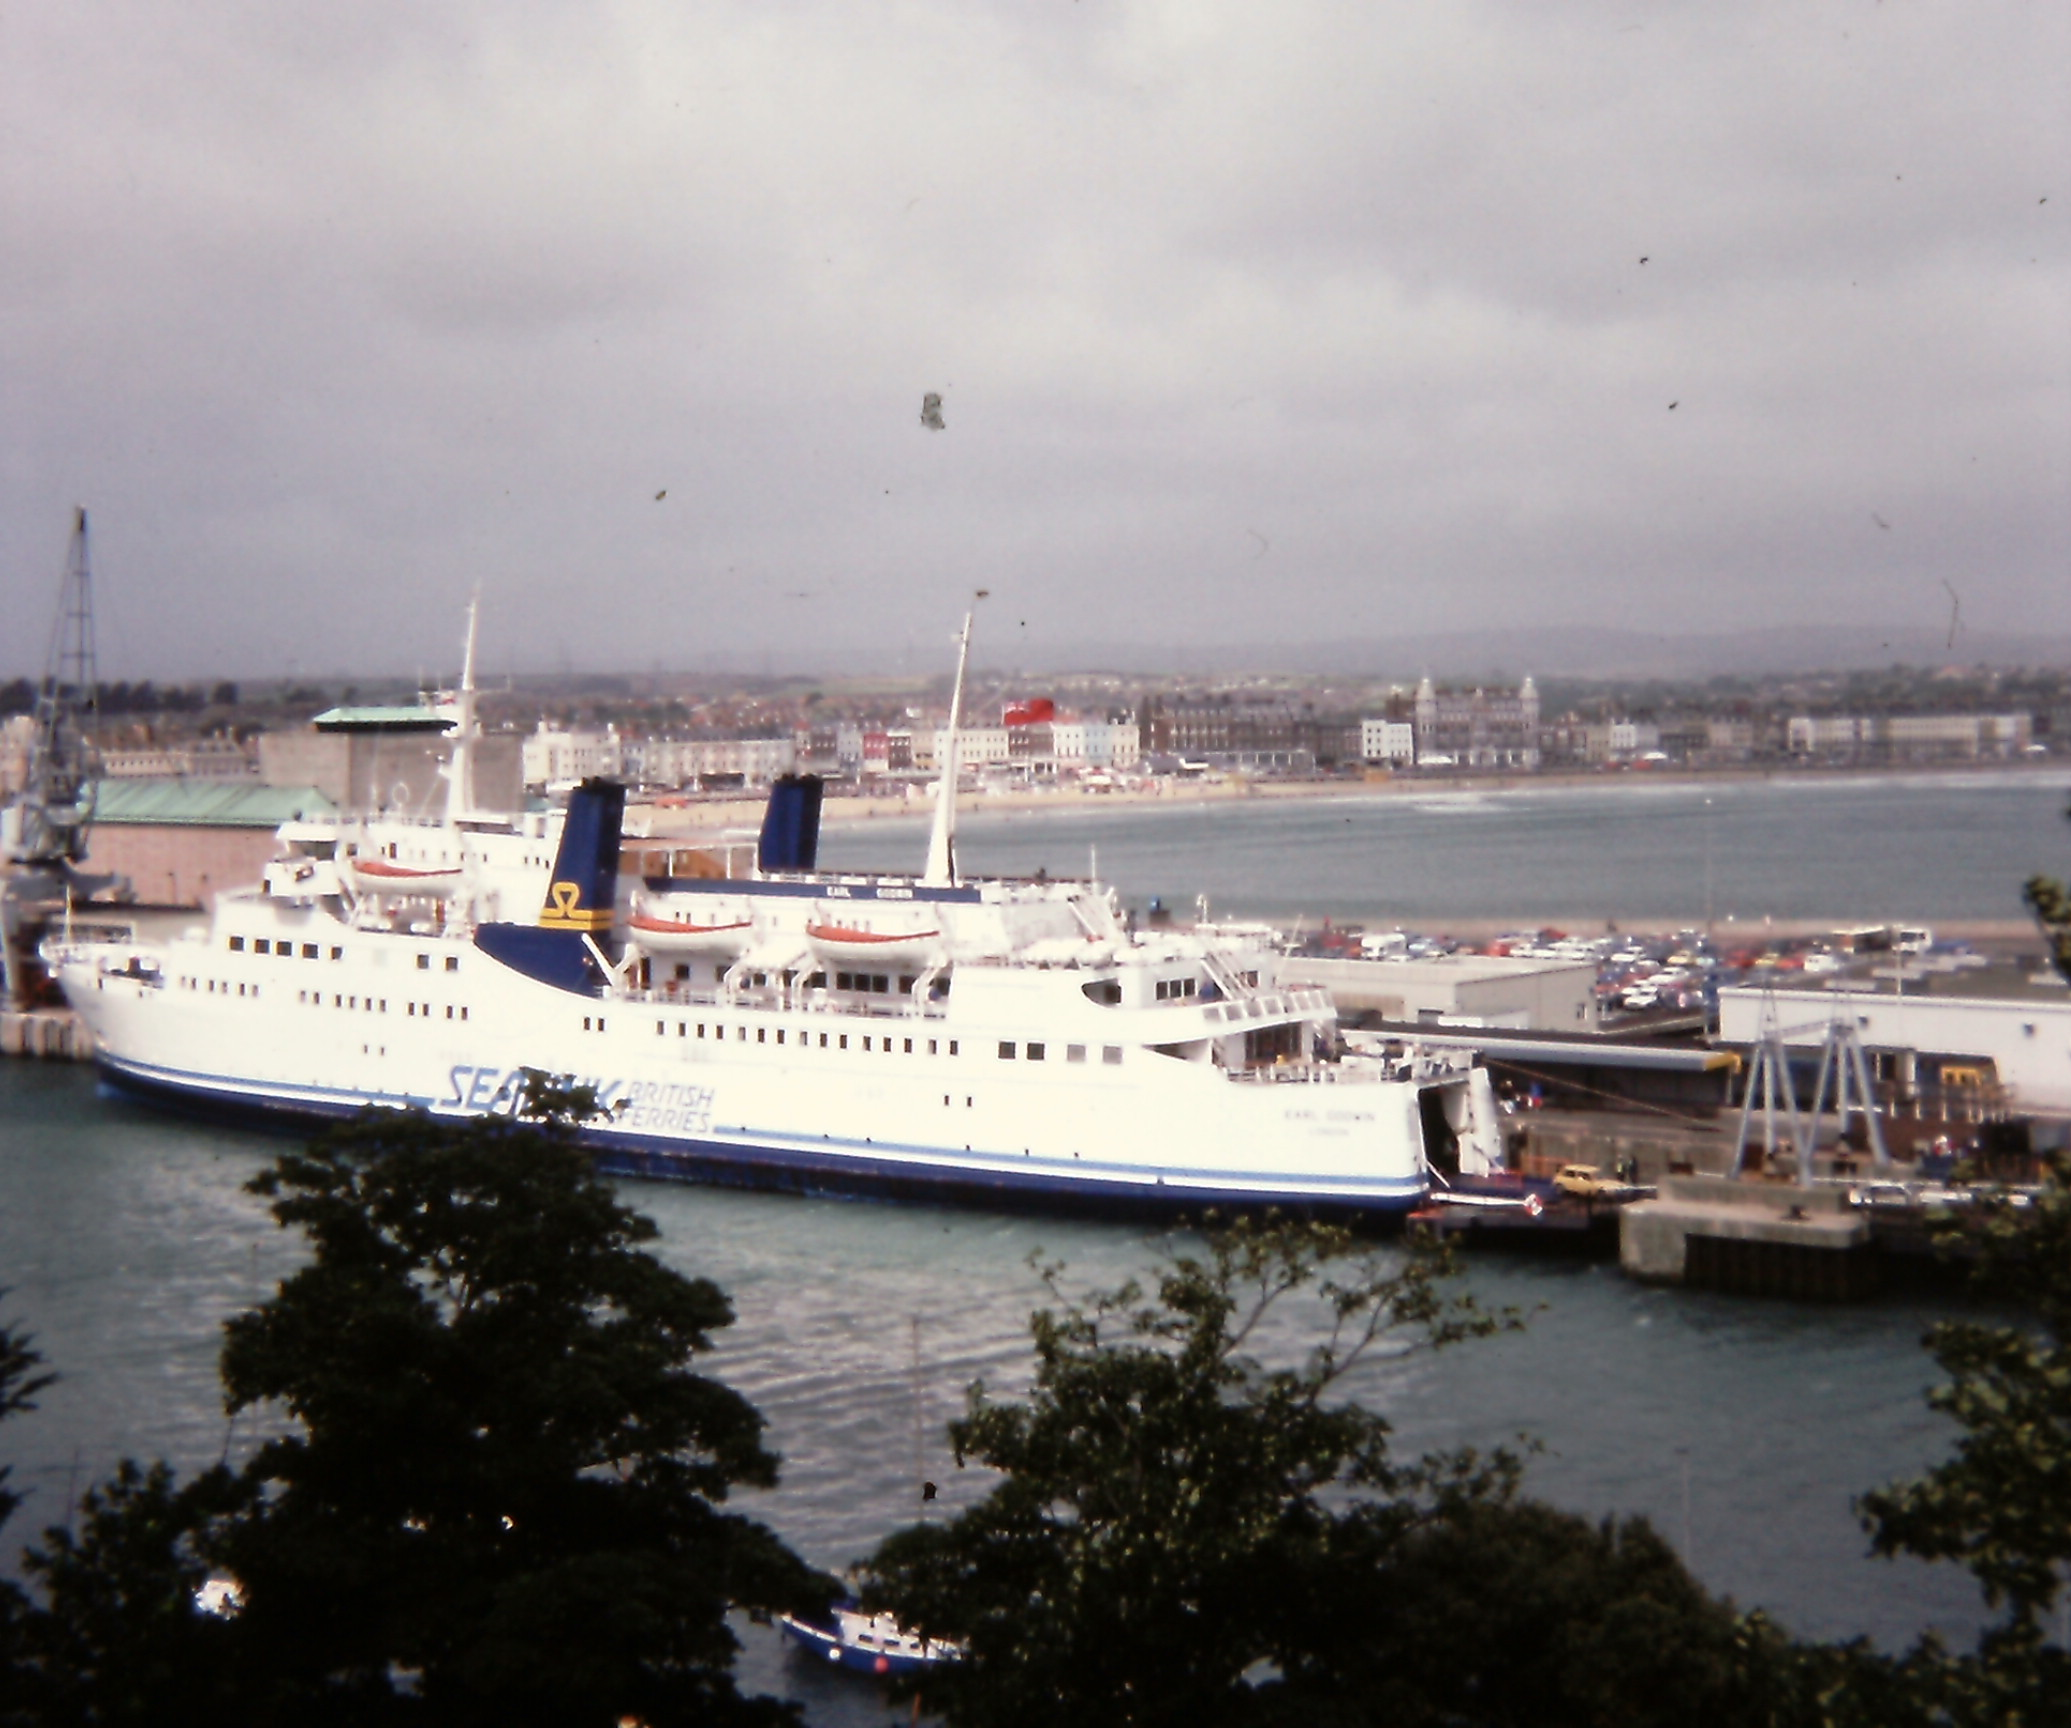 file:sealink ferry (channel islands or cherbourg) in weymouth